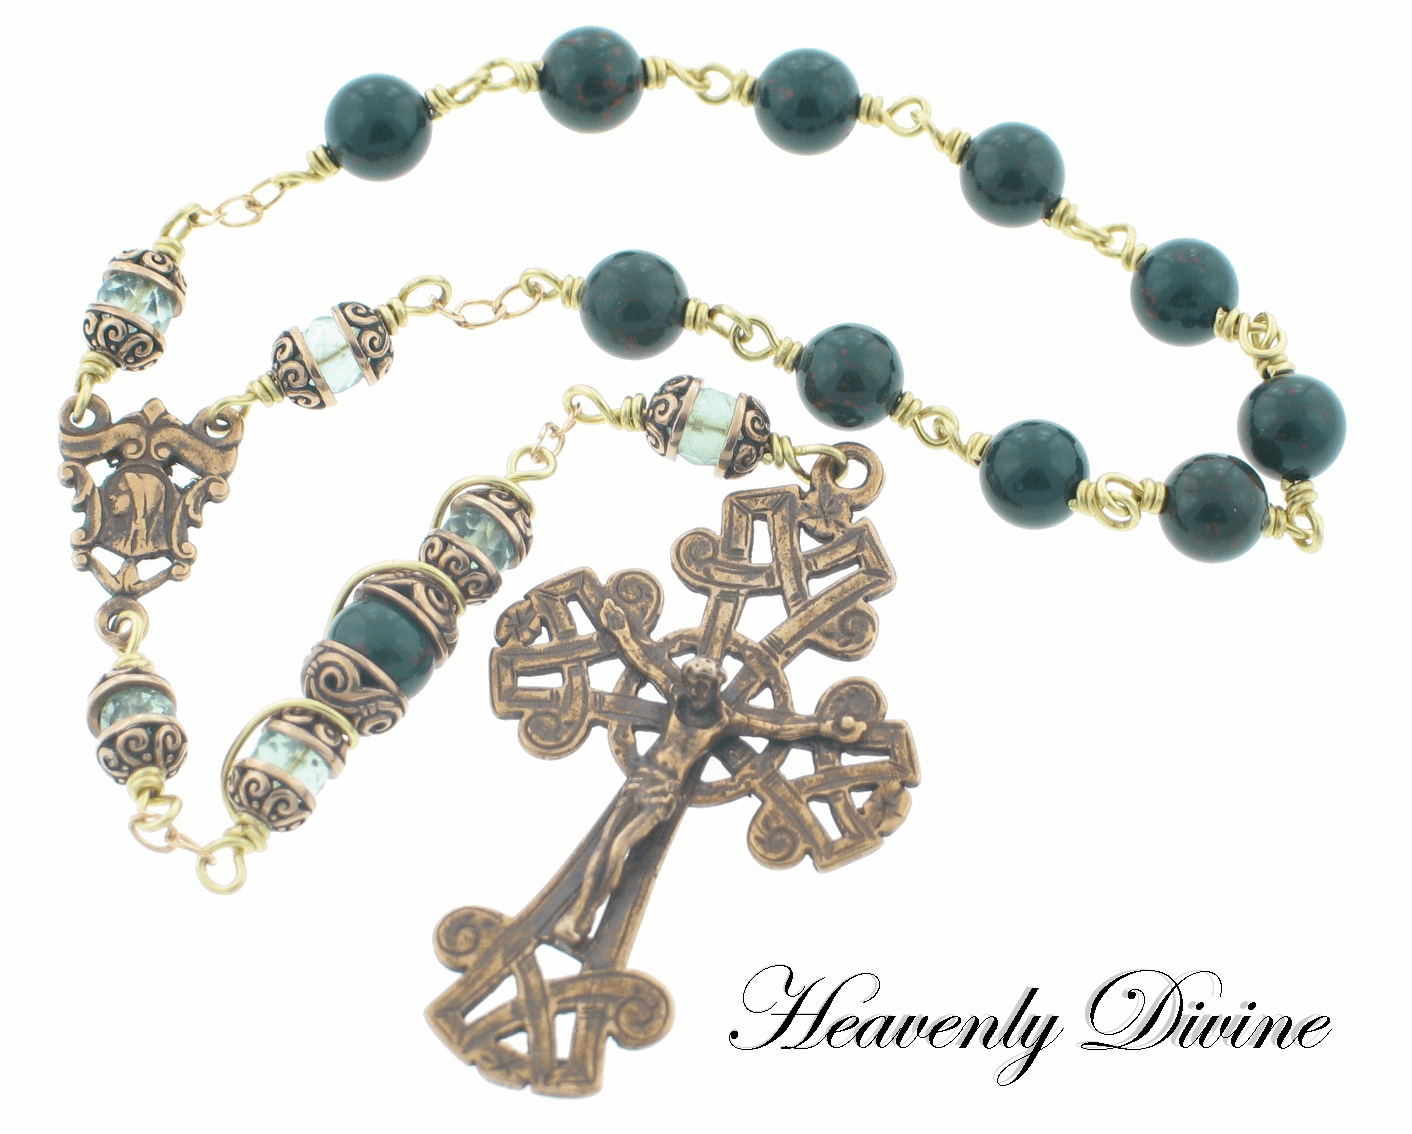 Handmade Irish Celtic Wire Wrapped One Decade Rosary by Heavenly Divine